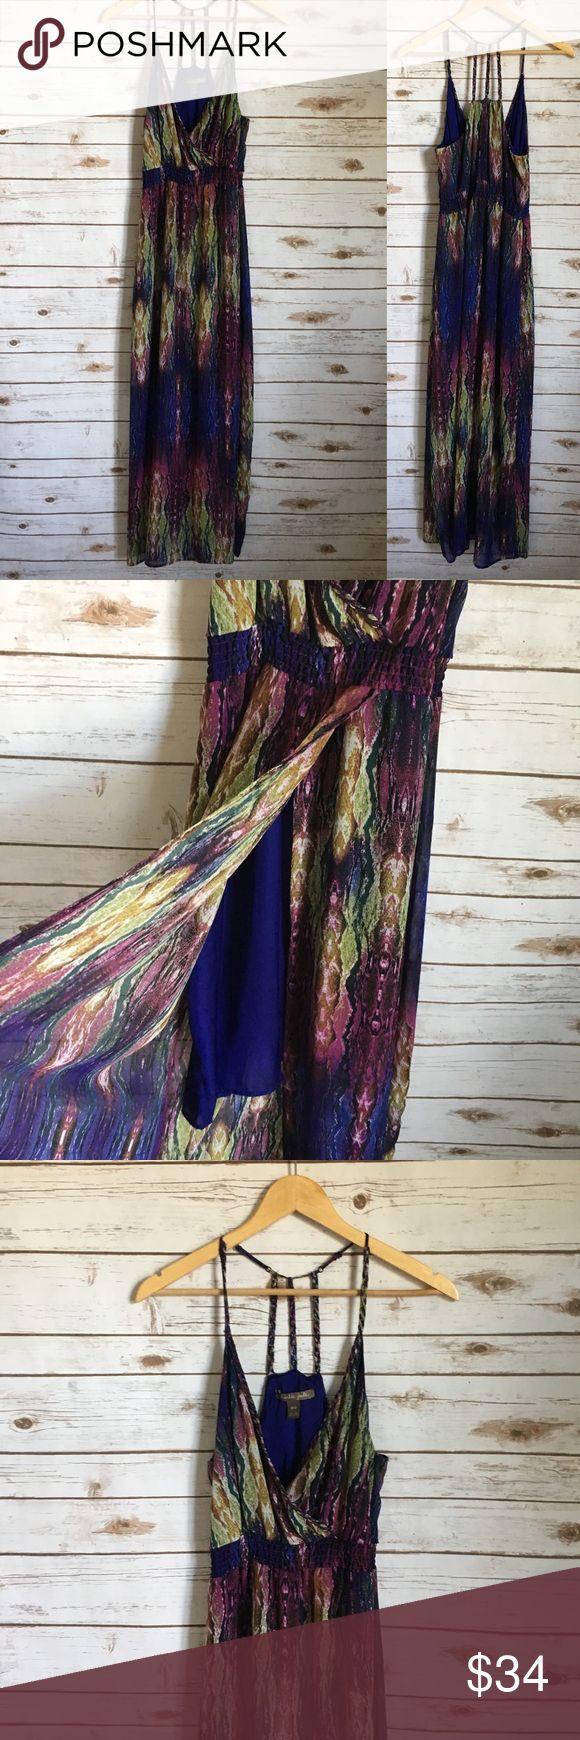 Charlie Jade Maxi Dress Charlie Jade Snake Print Maxi Dress Beautiful colors with a snake print. The Skirt potion sort of wraps around the front and there is a mid thigh length lining. In great used condition. Measurements coming soon. Charlie Jade Dresses Maxi